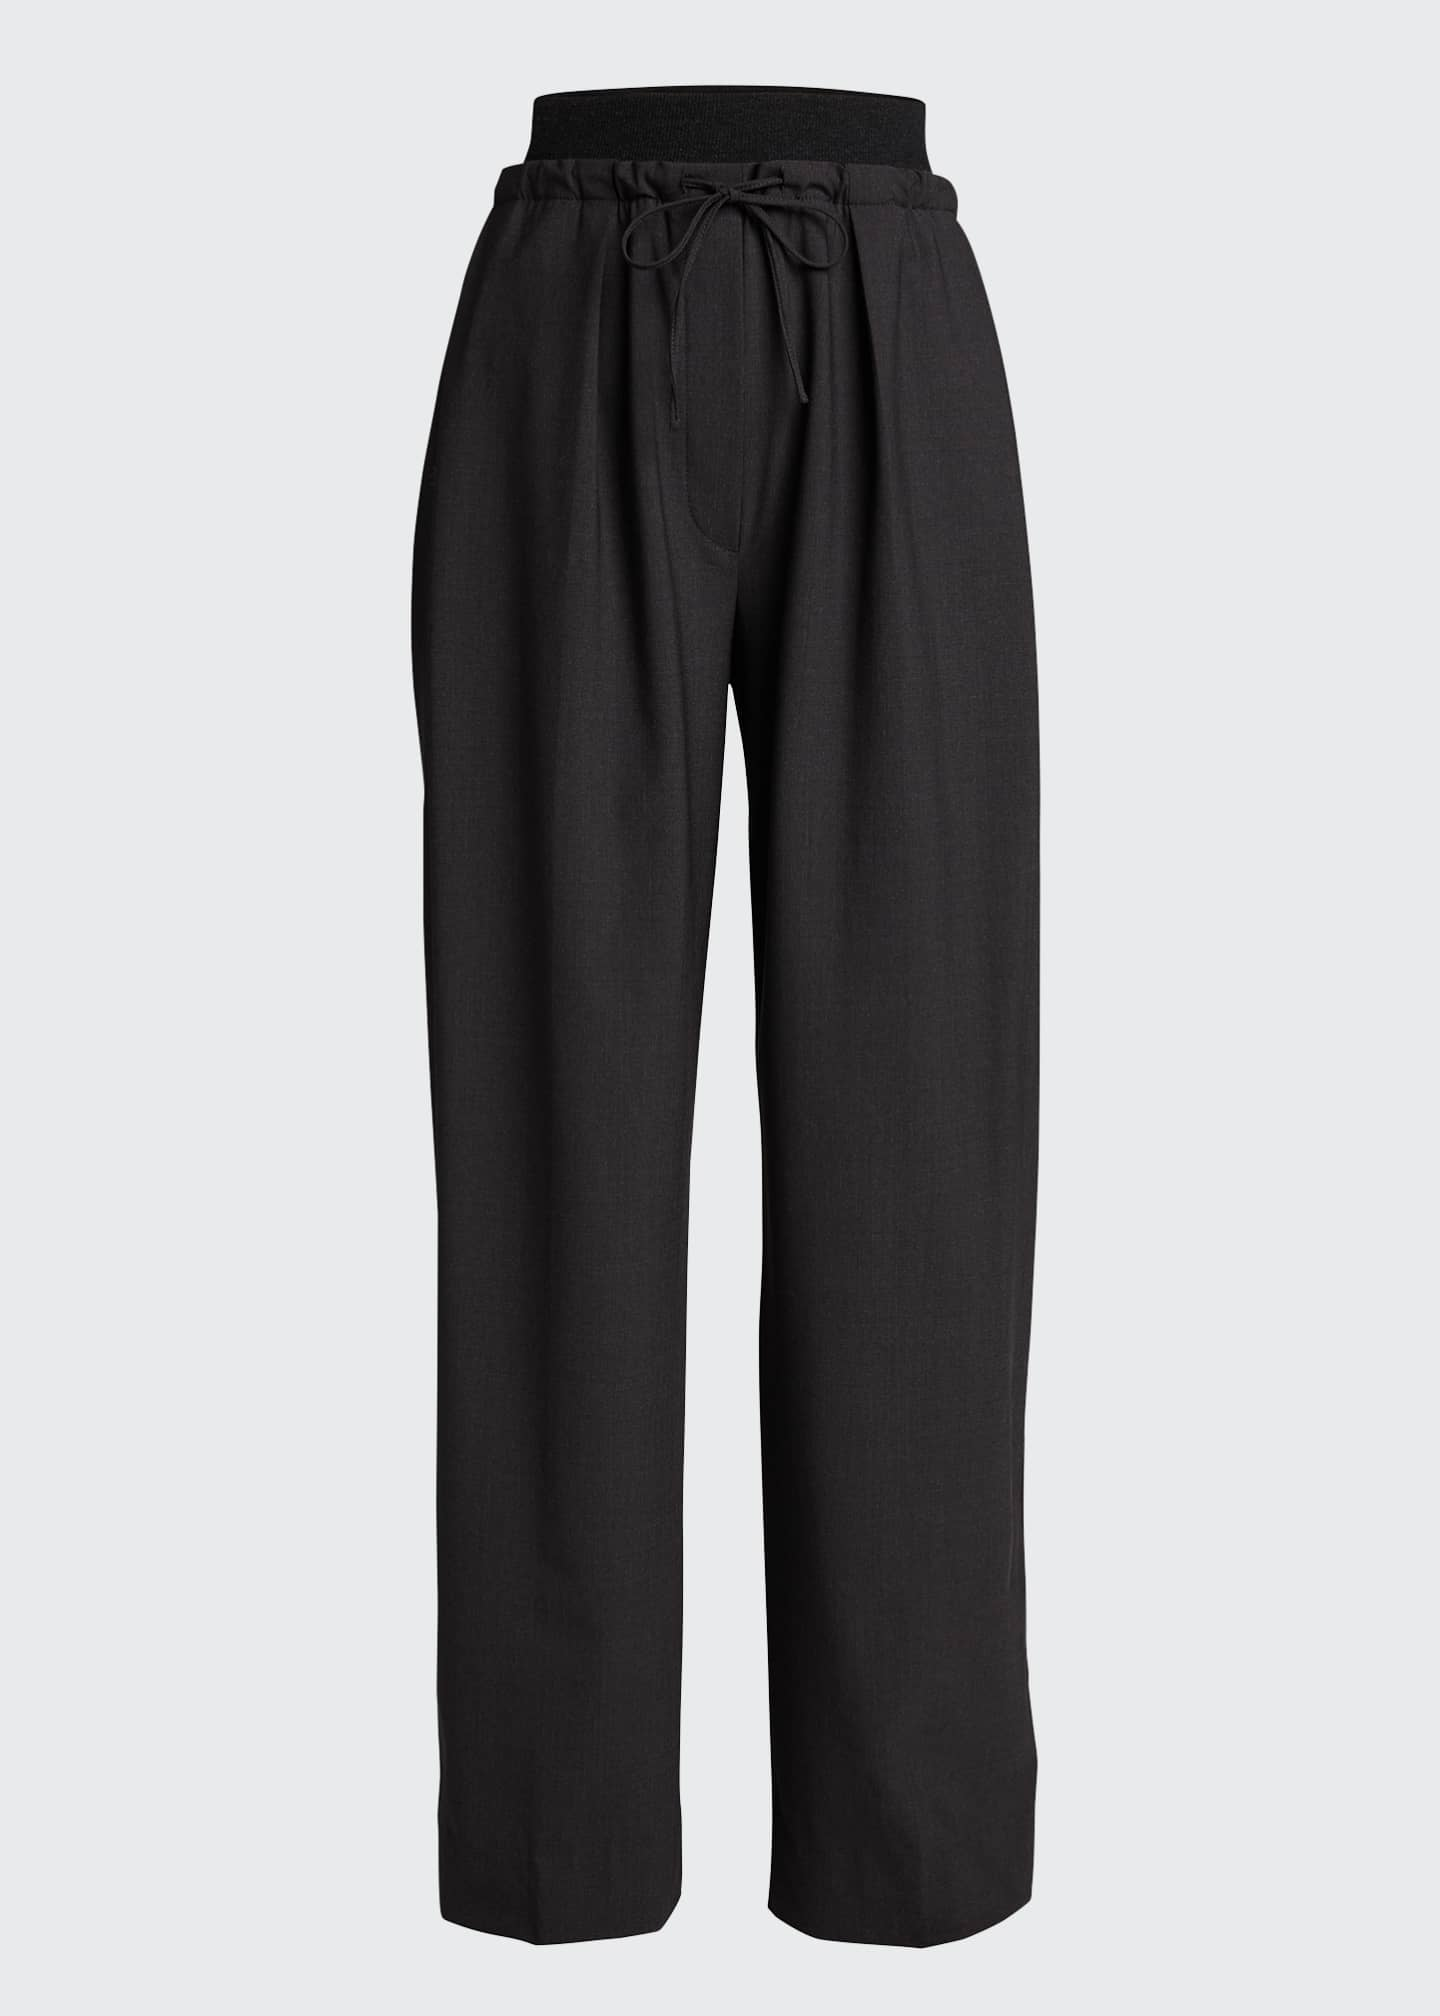 Image 5 of 5: Cashmere-Waist Wool Wide-Leg Pants